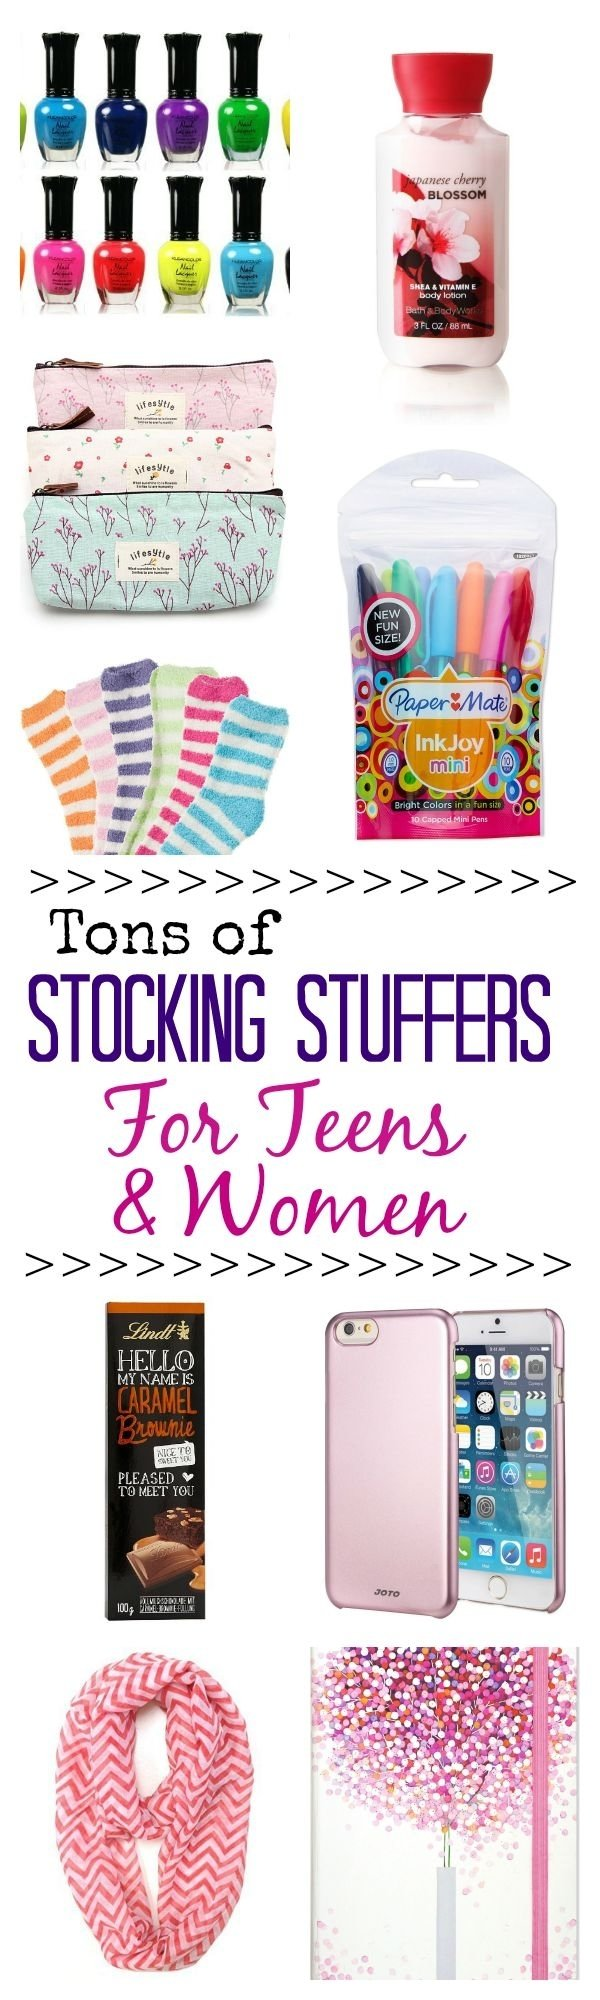 10 Awesome Christmas List Ideas For Girls